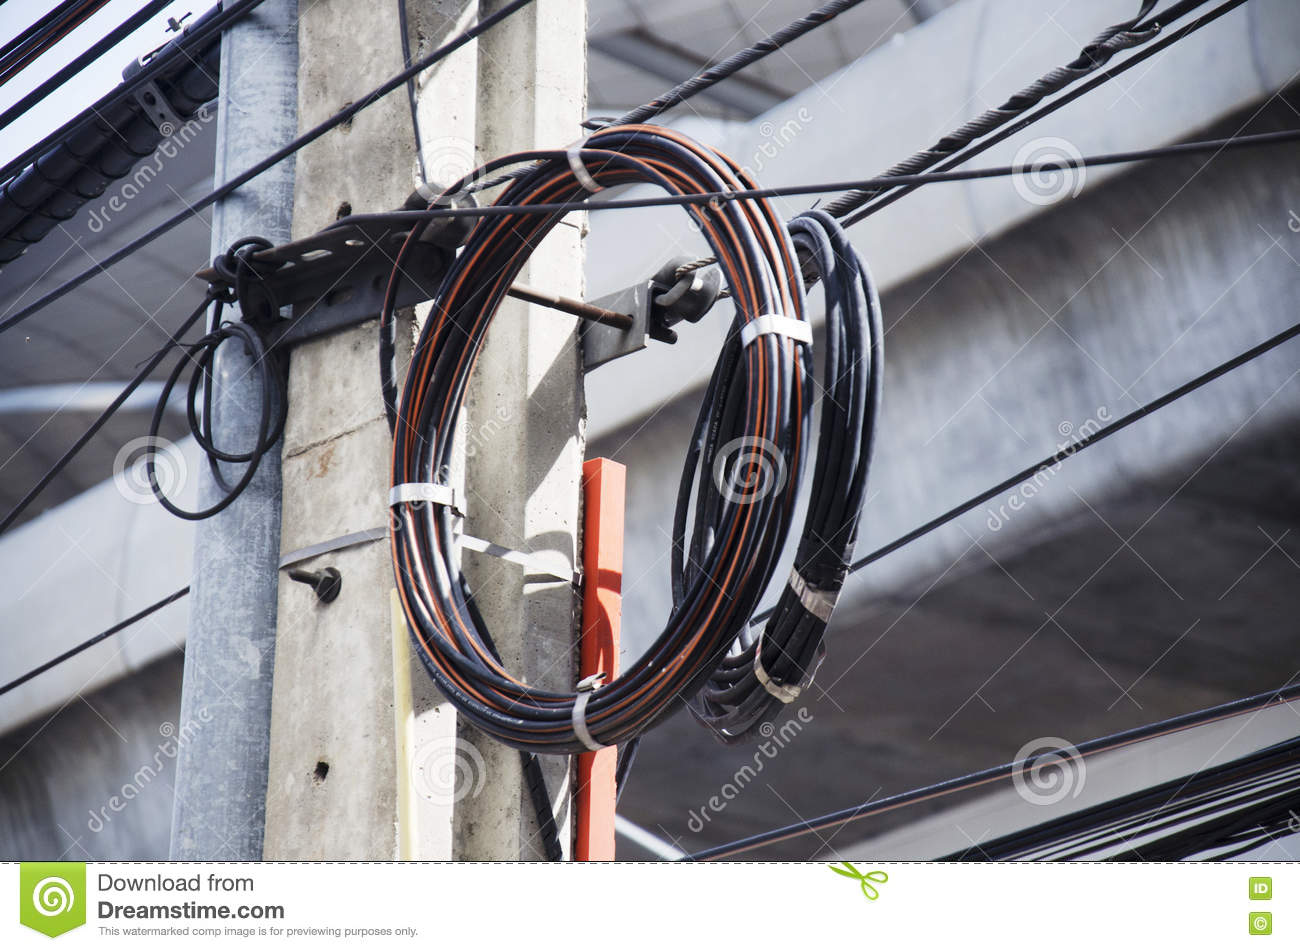 Old Phone Line Wiring Detailed Schematics Diagram Bt Socket Many Wires Messy With Power Cables On Electricity Pilla Dsl